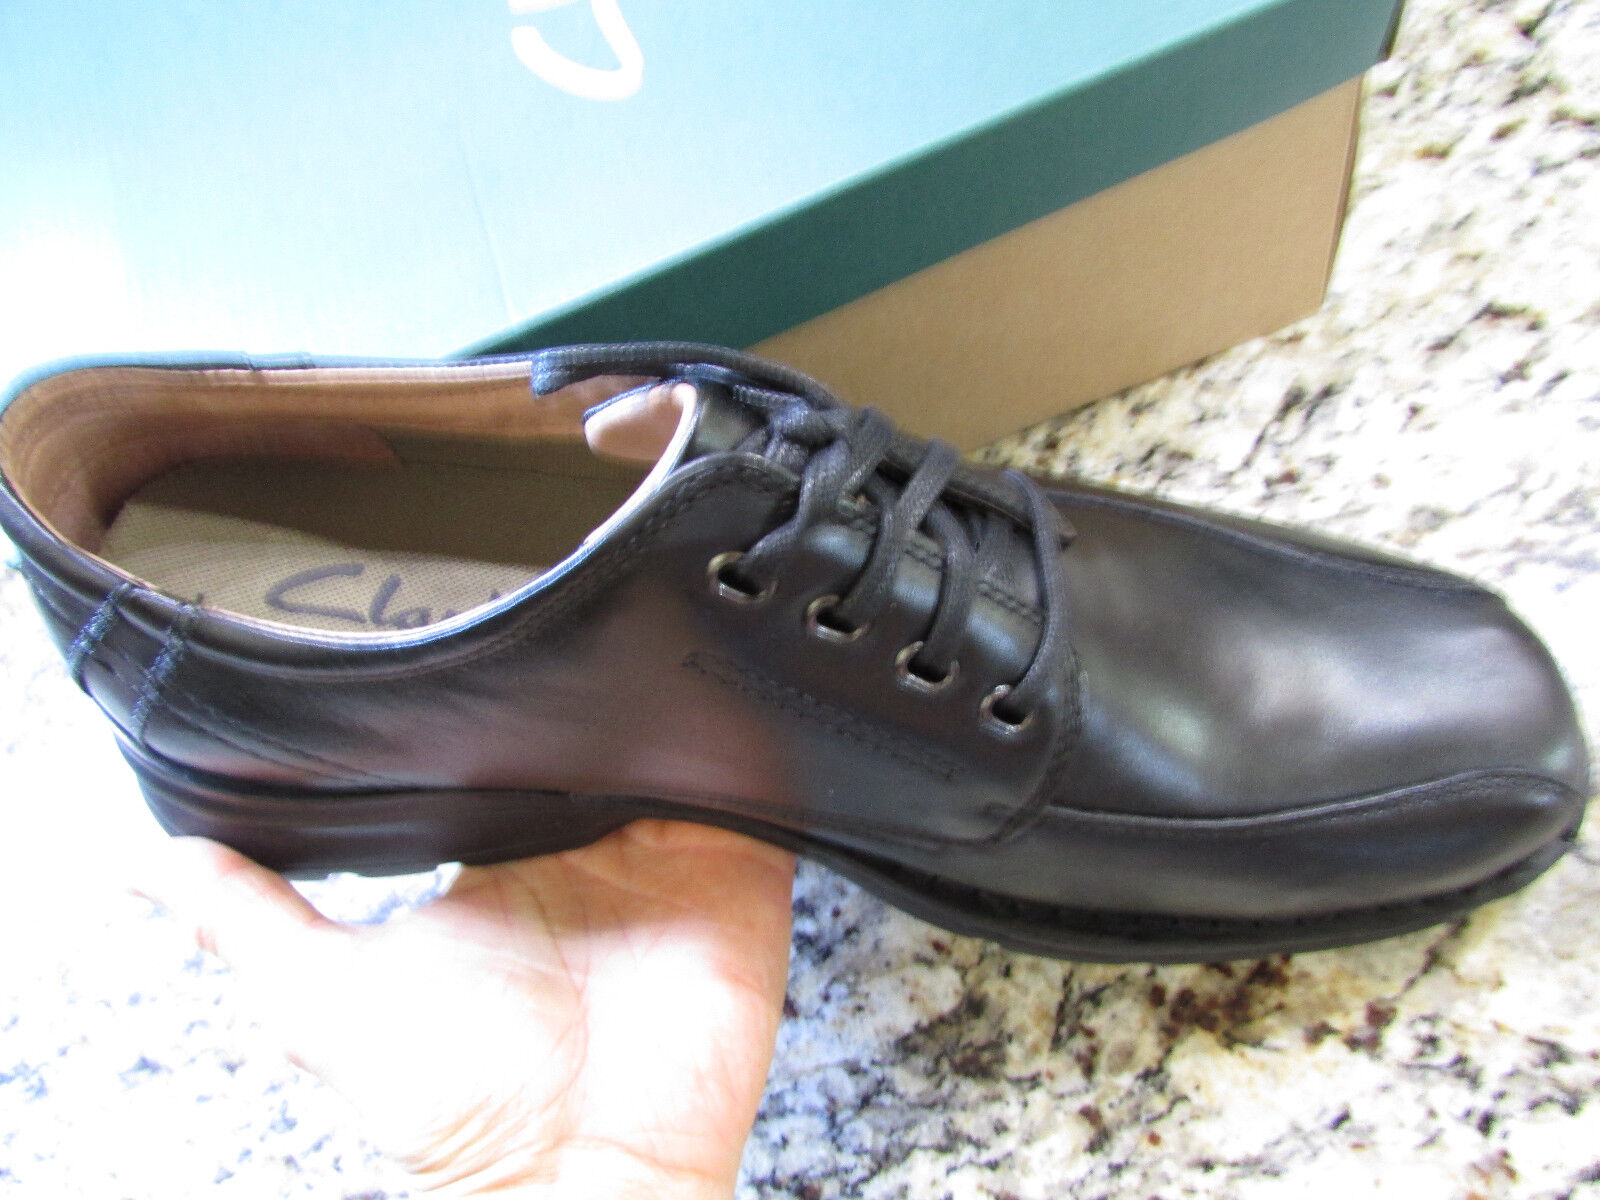 NEW CLARKS RAUTINS BLACK LEATHER OXFORD SHOES MENS 13 LACE UPS FREE SHIP